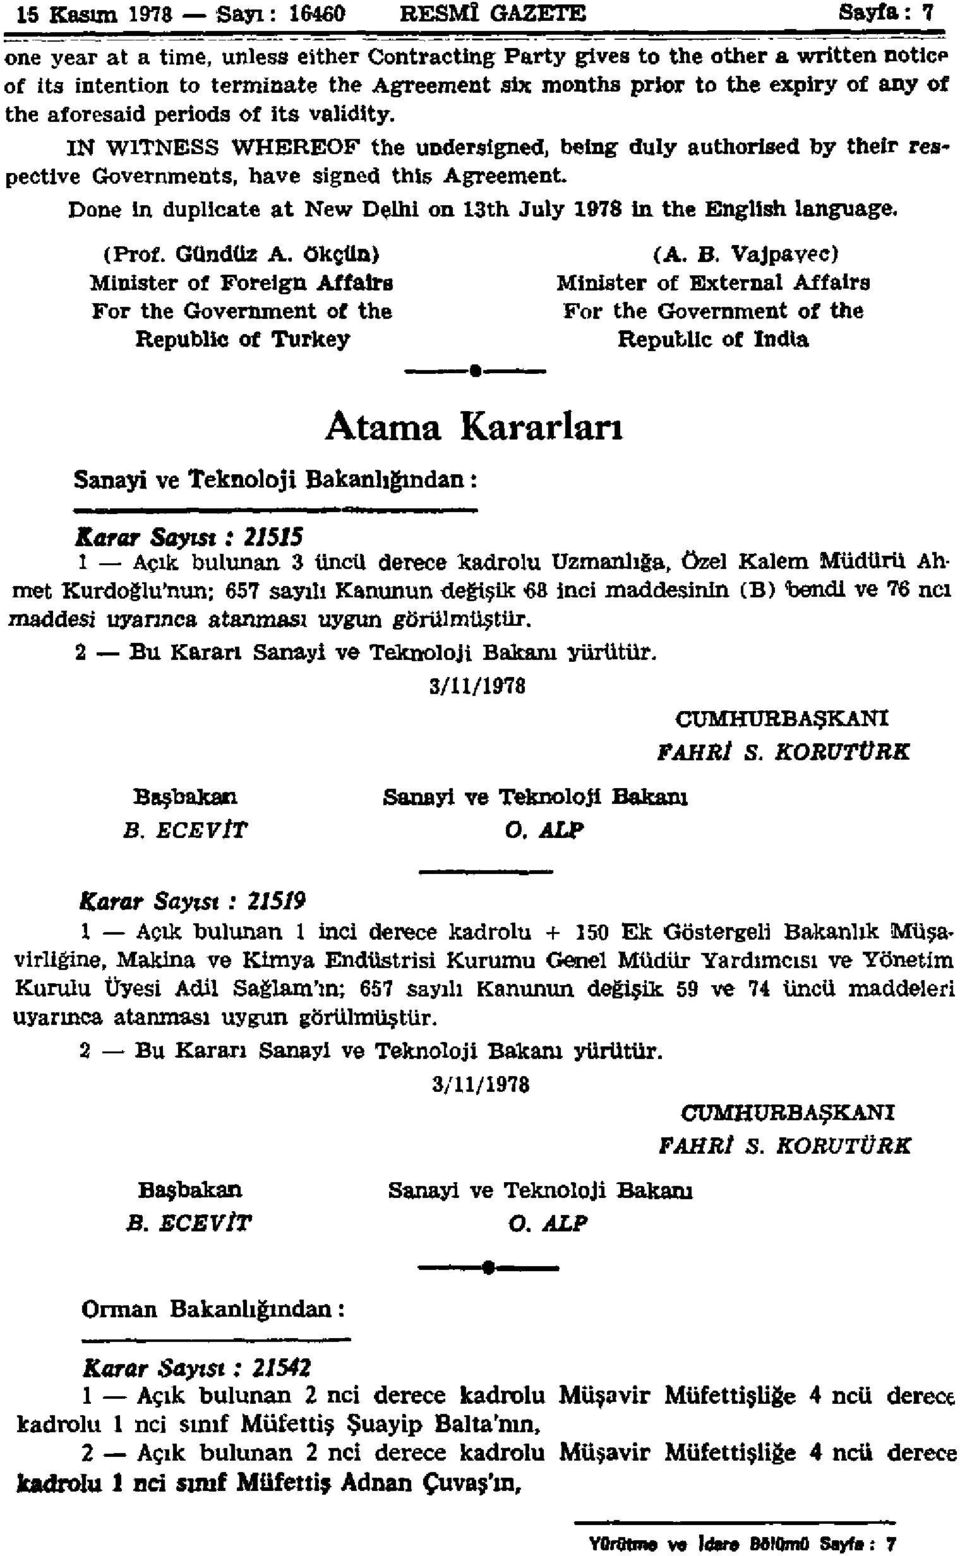 Done in duplicate at New Delhi on 13th July 1978 in the English language. (Prof. Gündüz A. ökçün) Minister of Foreign Affairs For the Government of the Republic of Turkey (A. B.